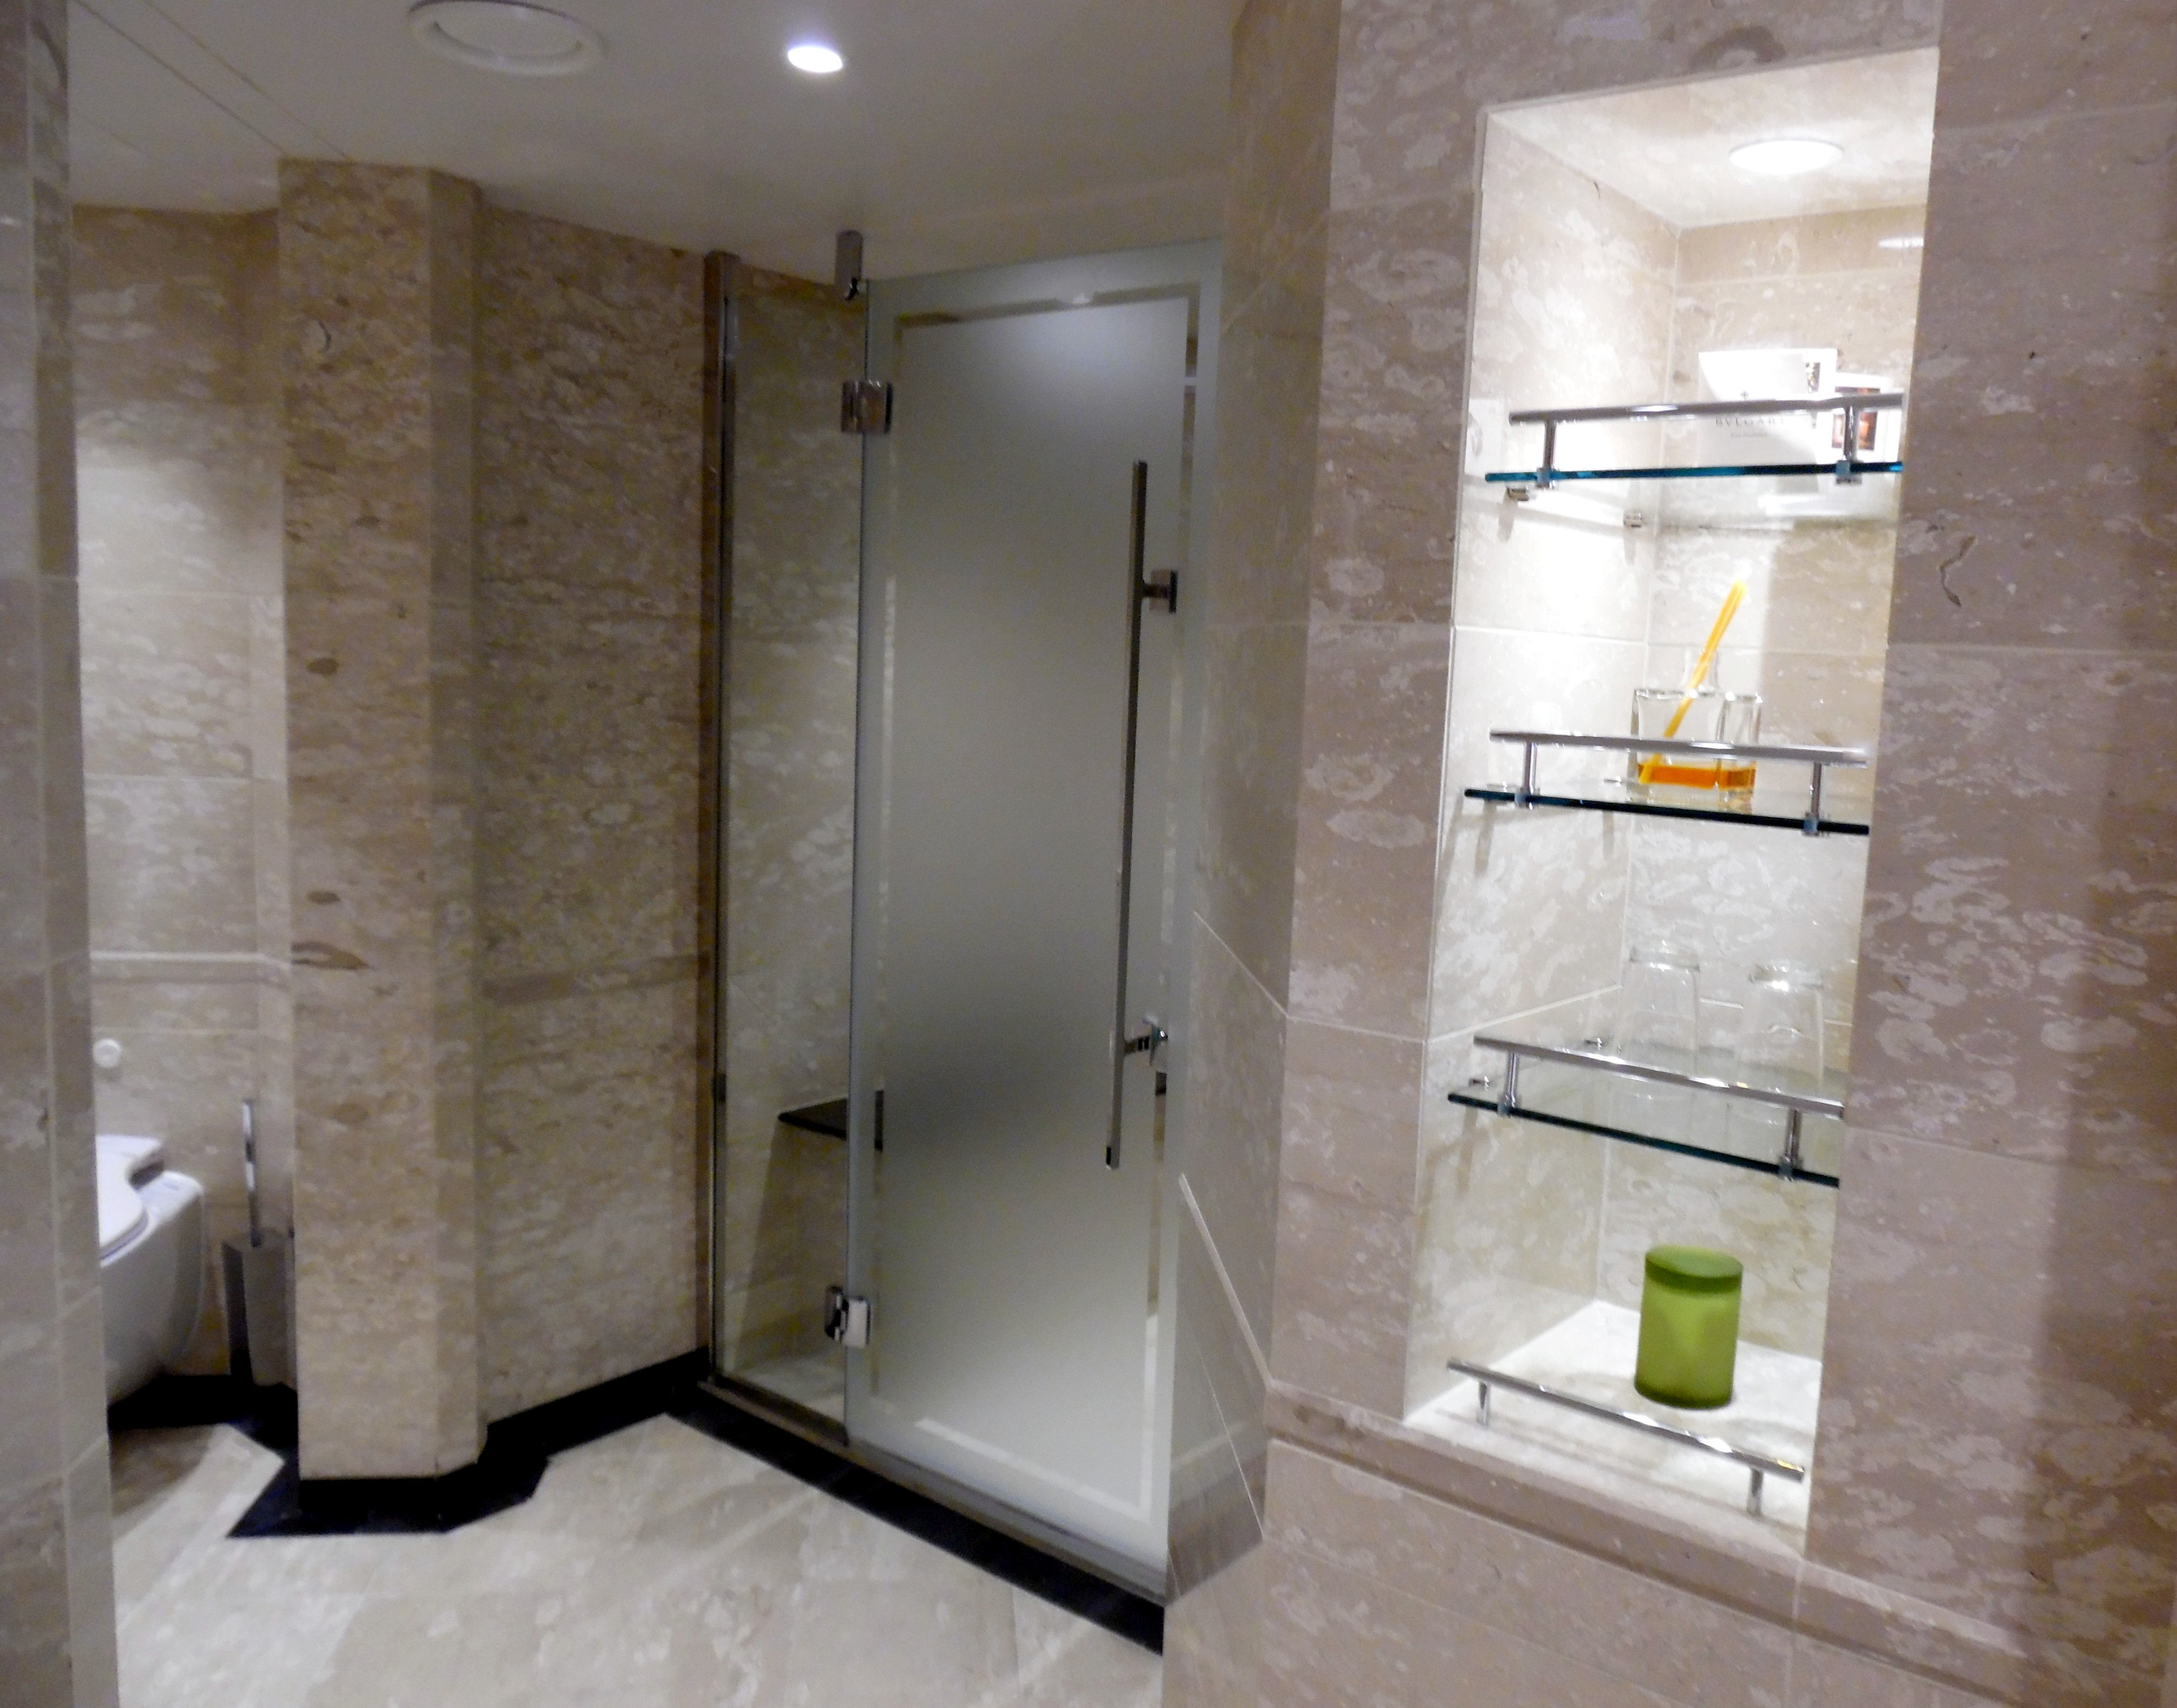 Shower area of master bathroom